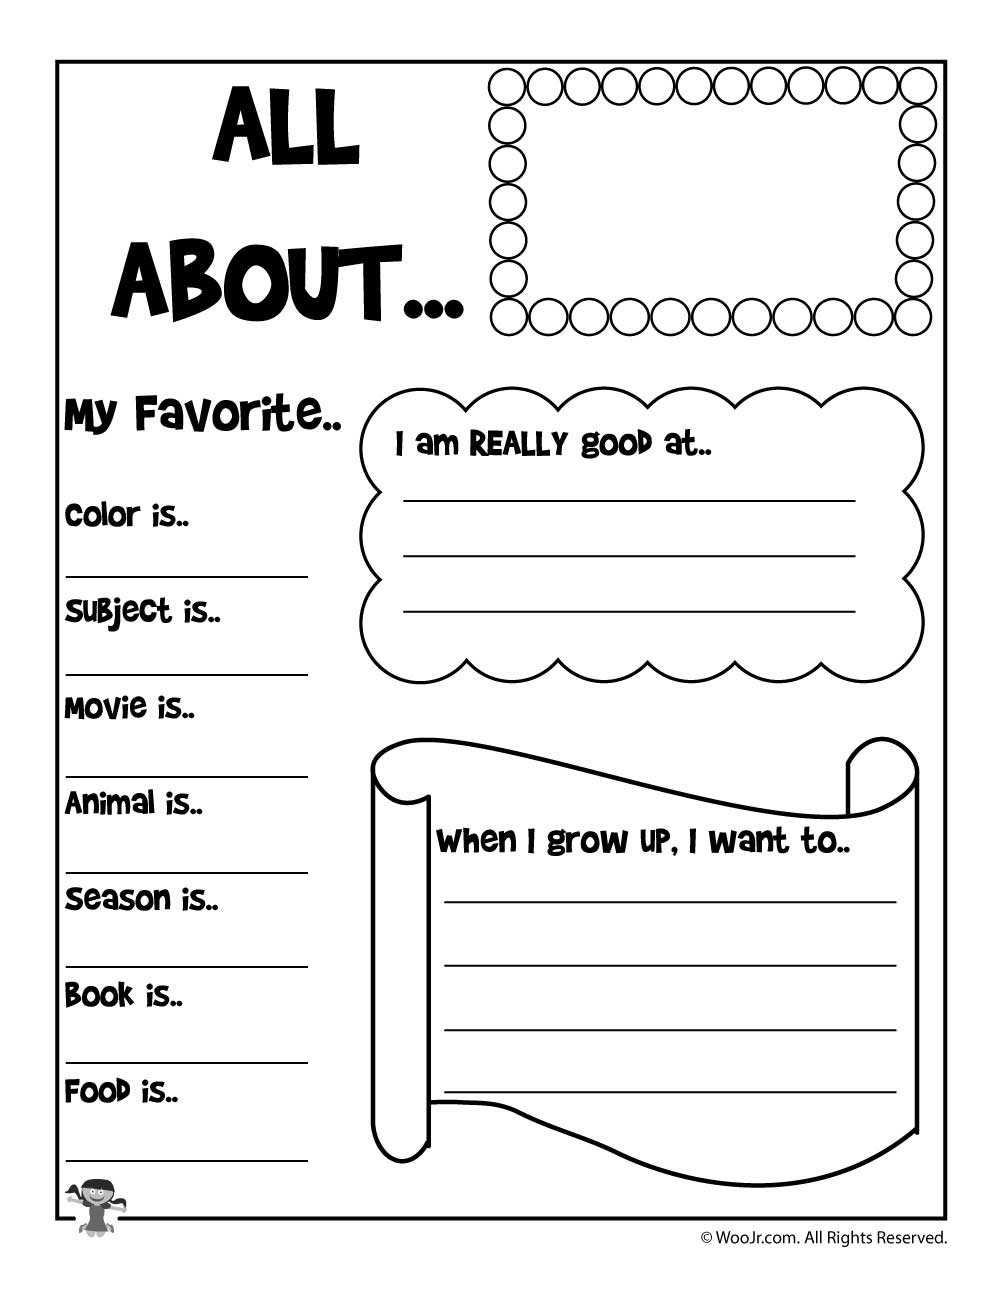 all about me coloring pages worksheets - all about me printable worksheet woo jr kids activities